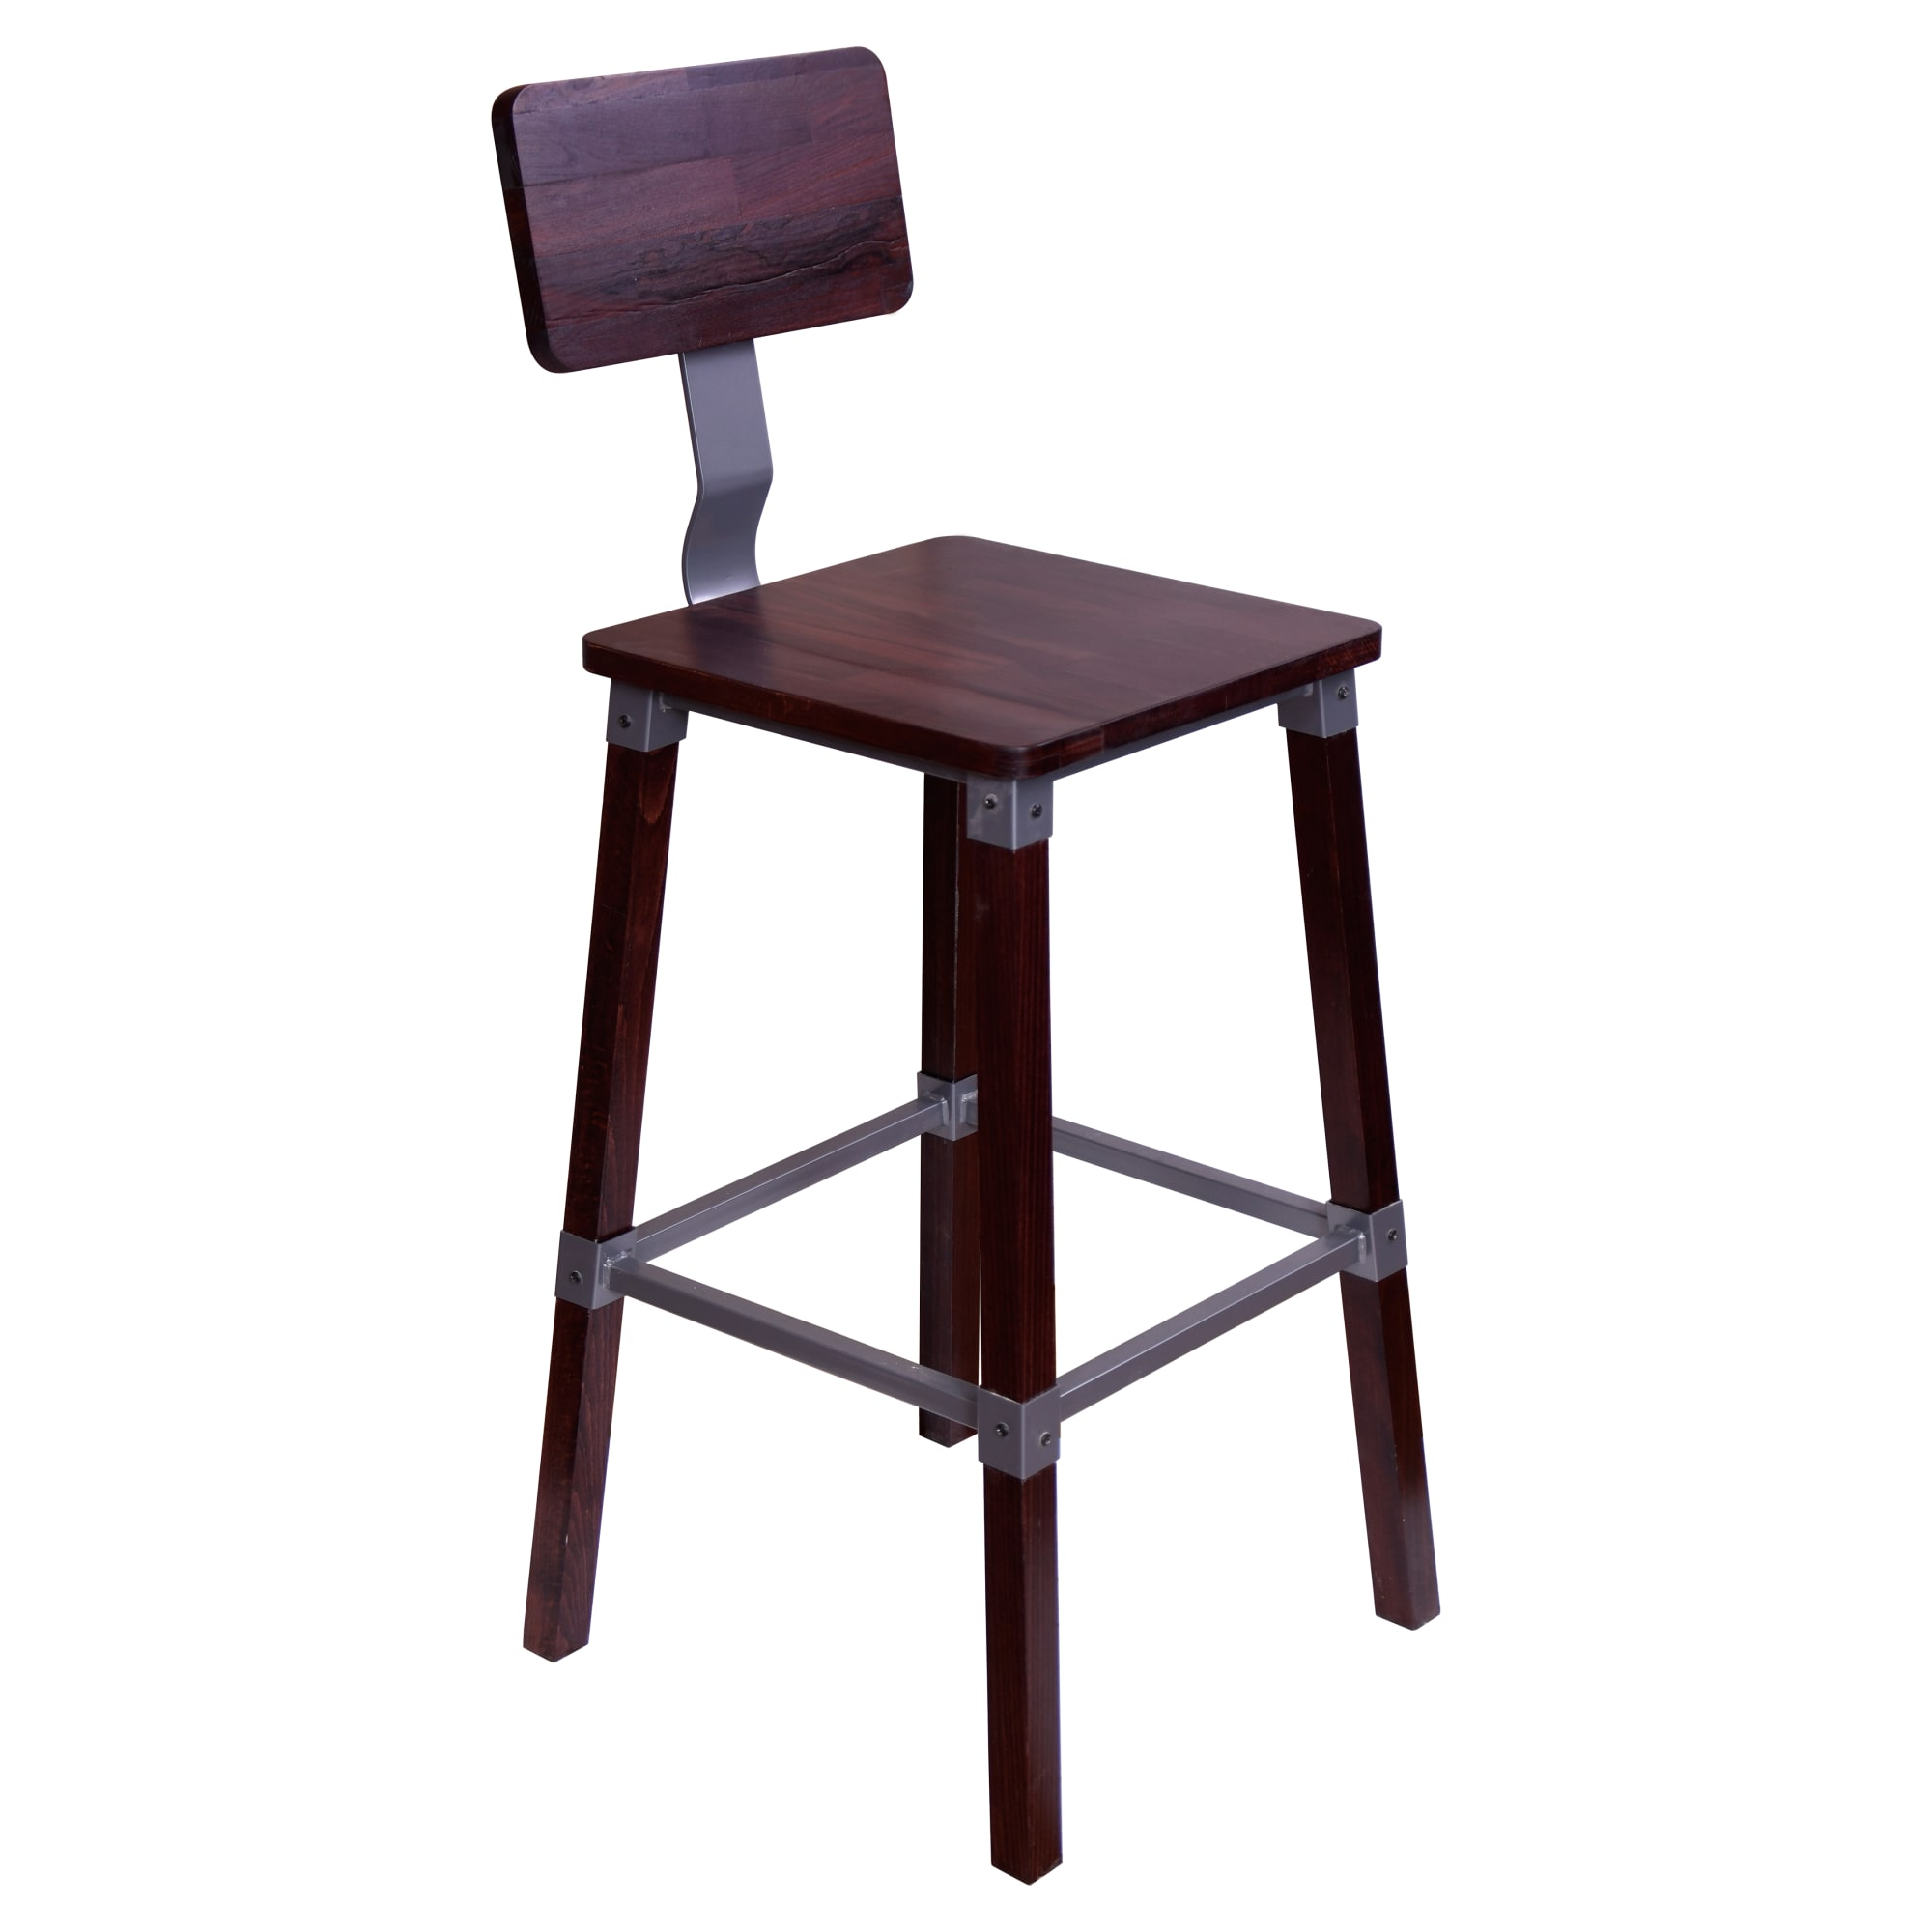 Malcolm Industrial Bar Stool with Malcolm Industrial Bar Stool